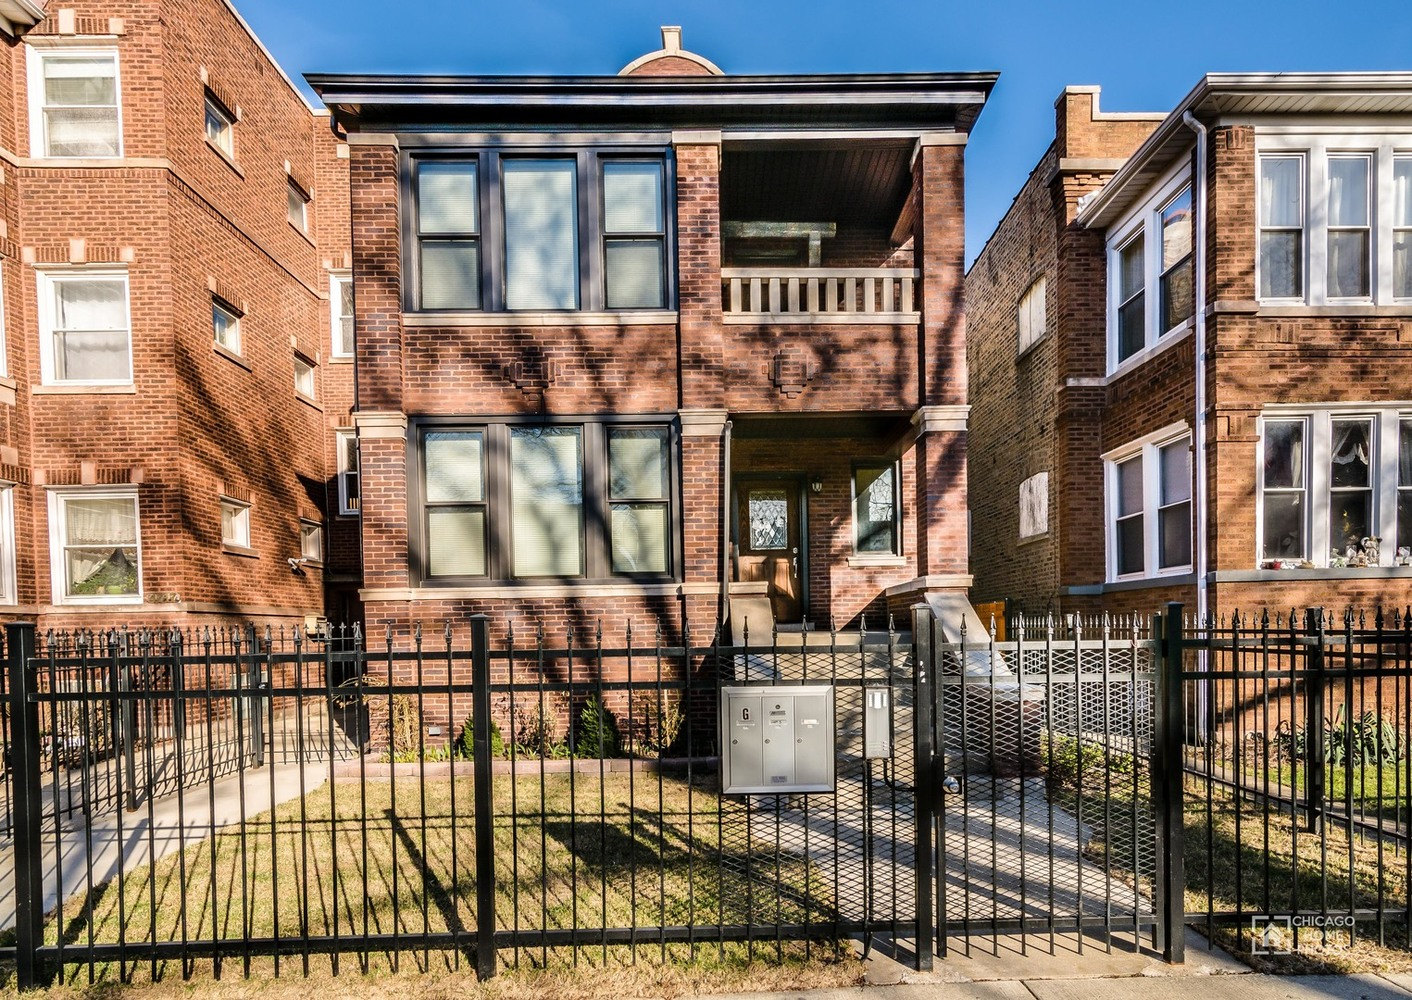 4713 North Drake Avenue, Unit 1 Chicago, IL 60625